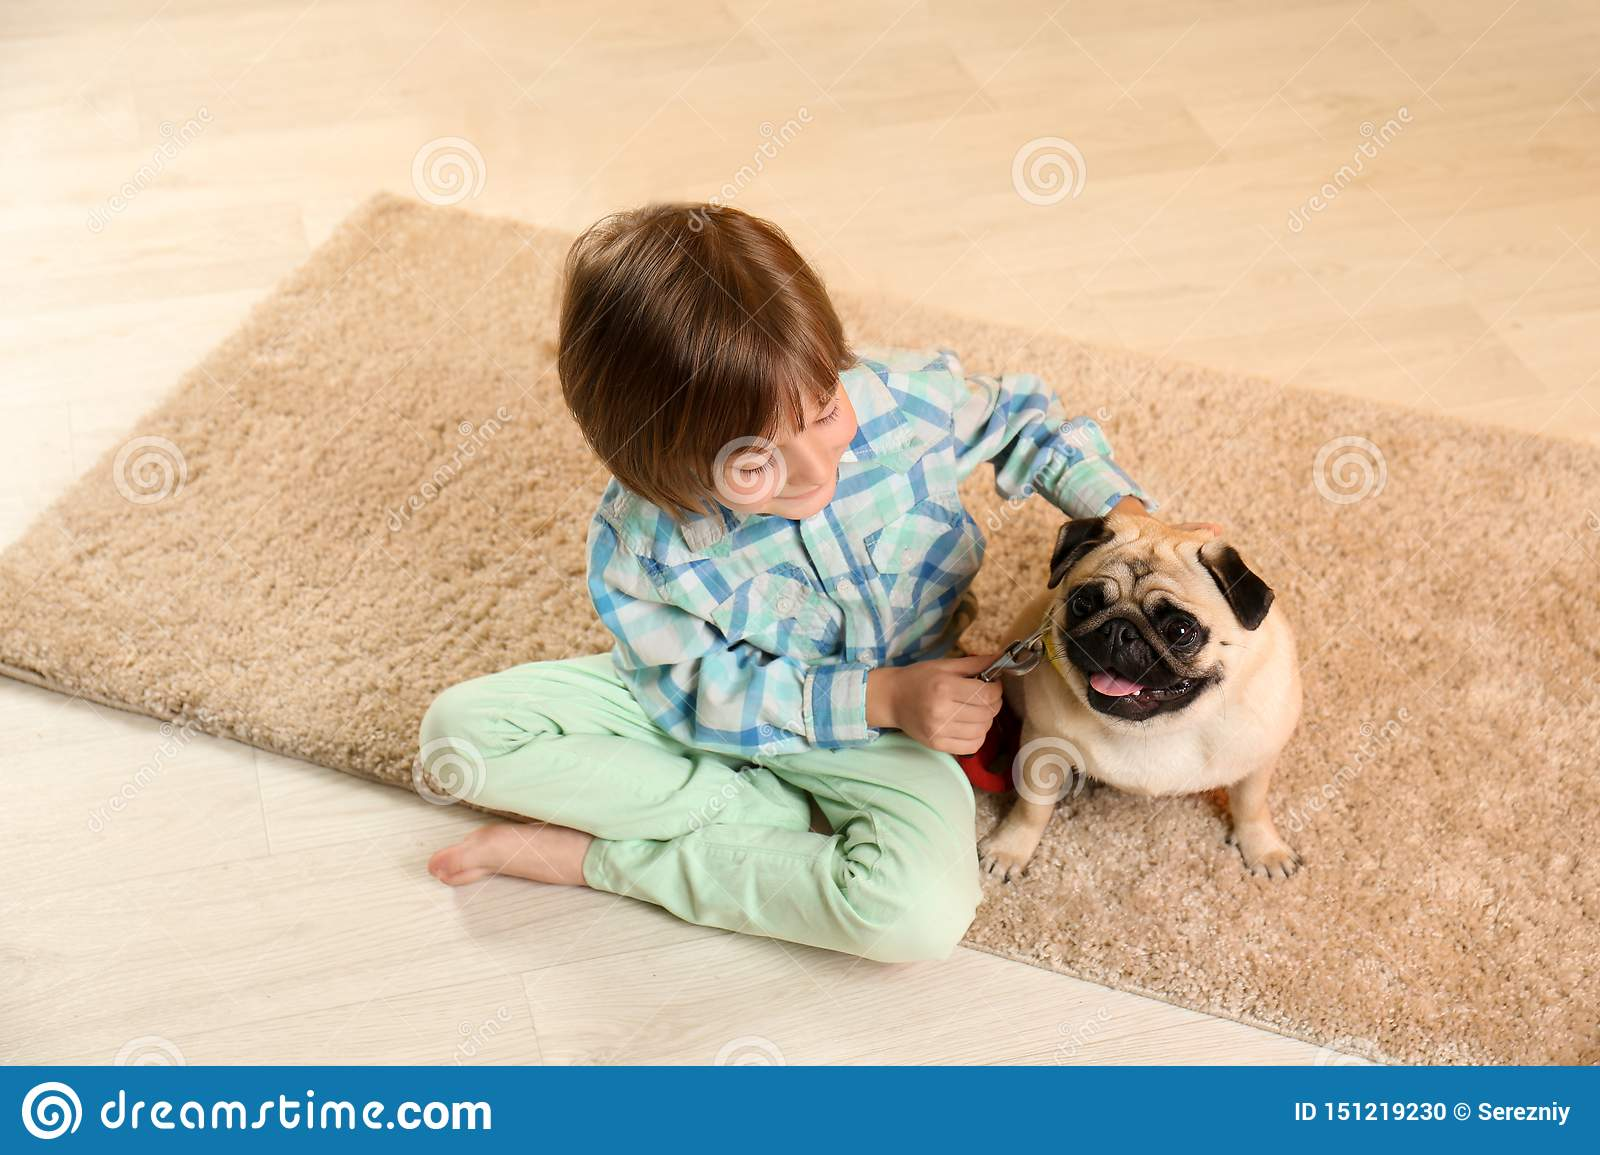 Little boy sitting with cute pug dog on floor at home